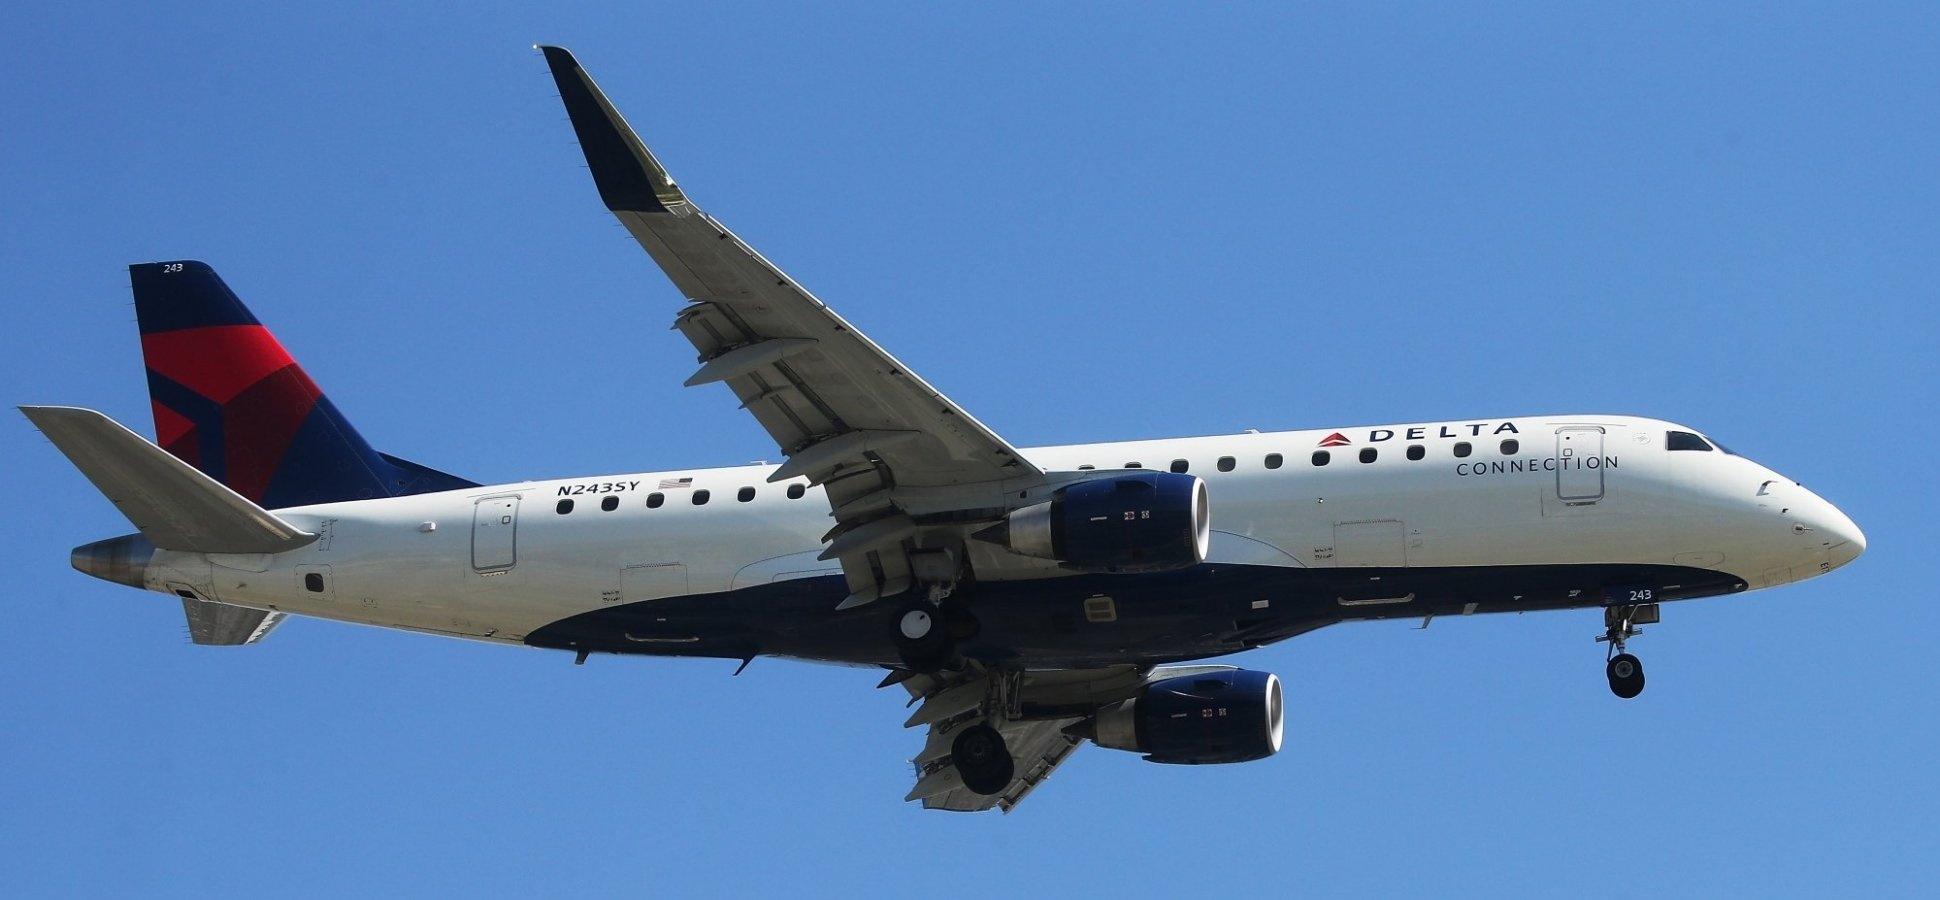 delta air lines just admitted to doing something no airline should